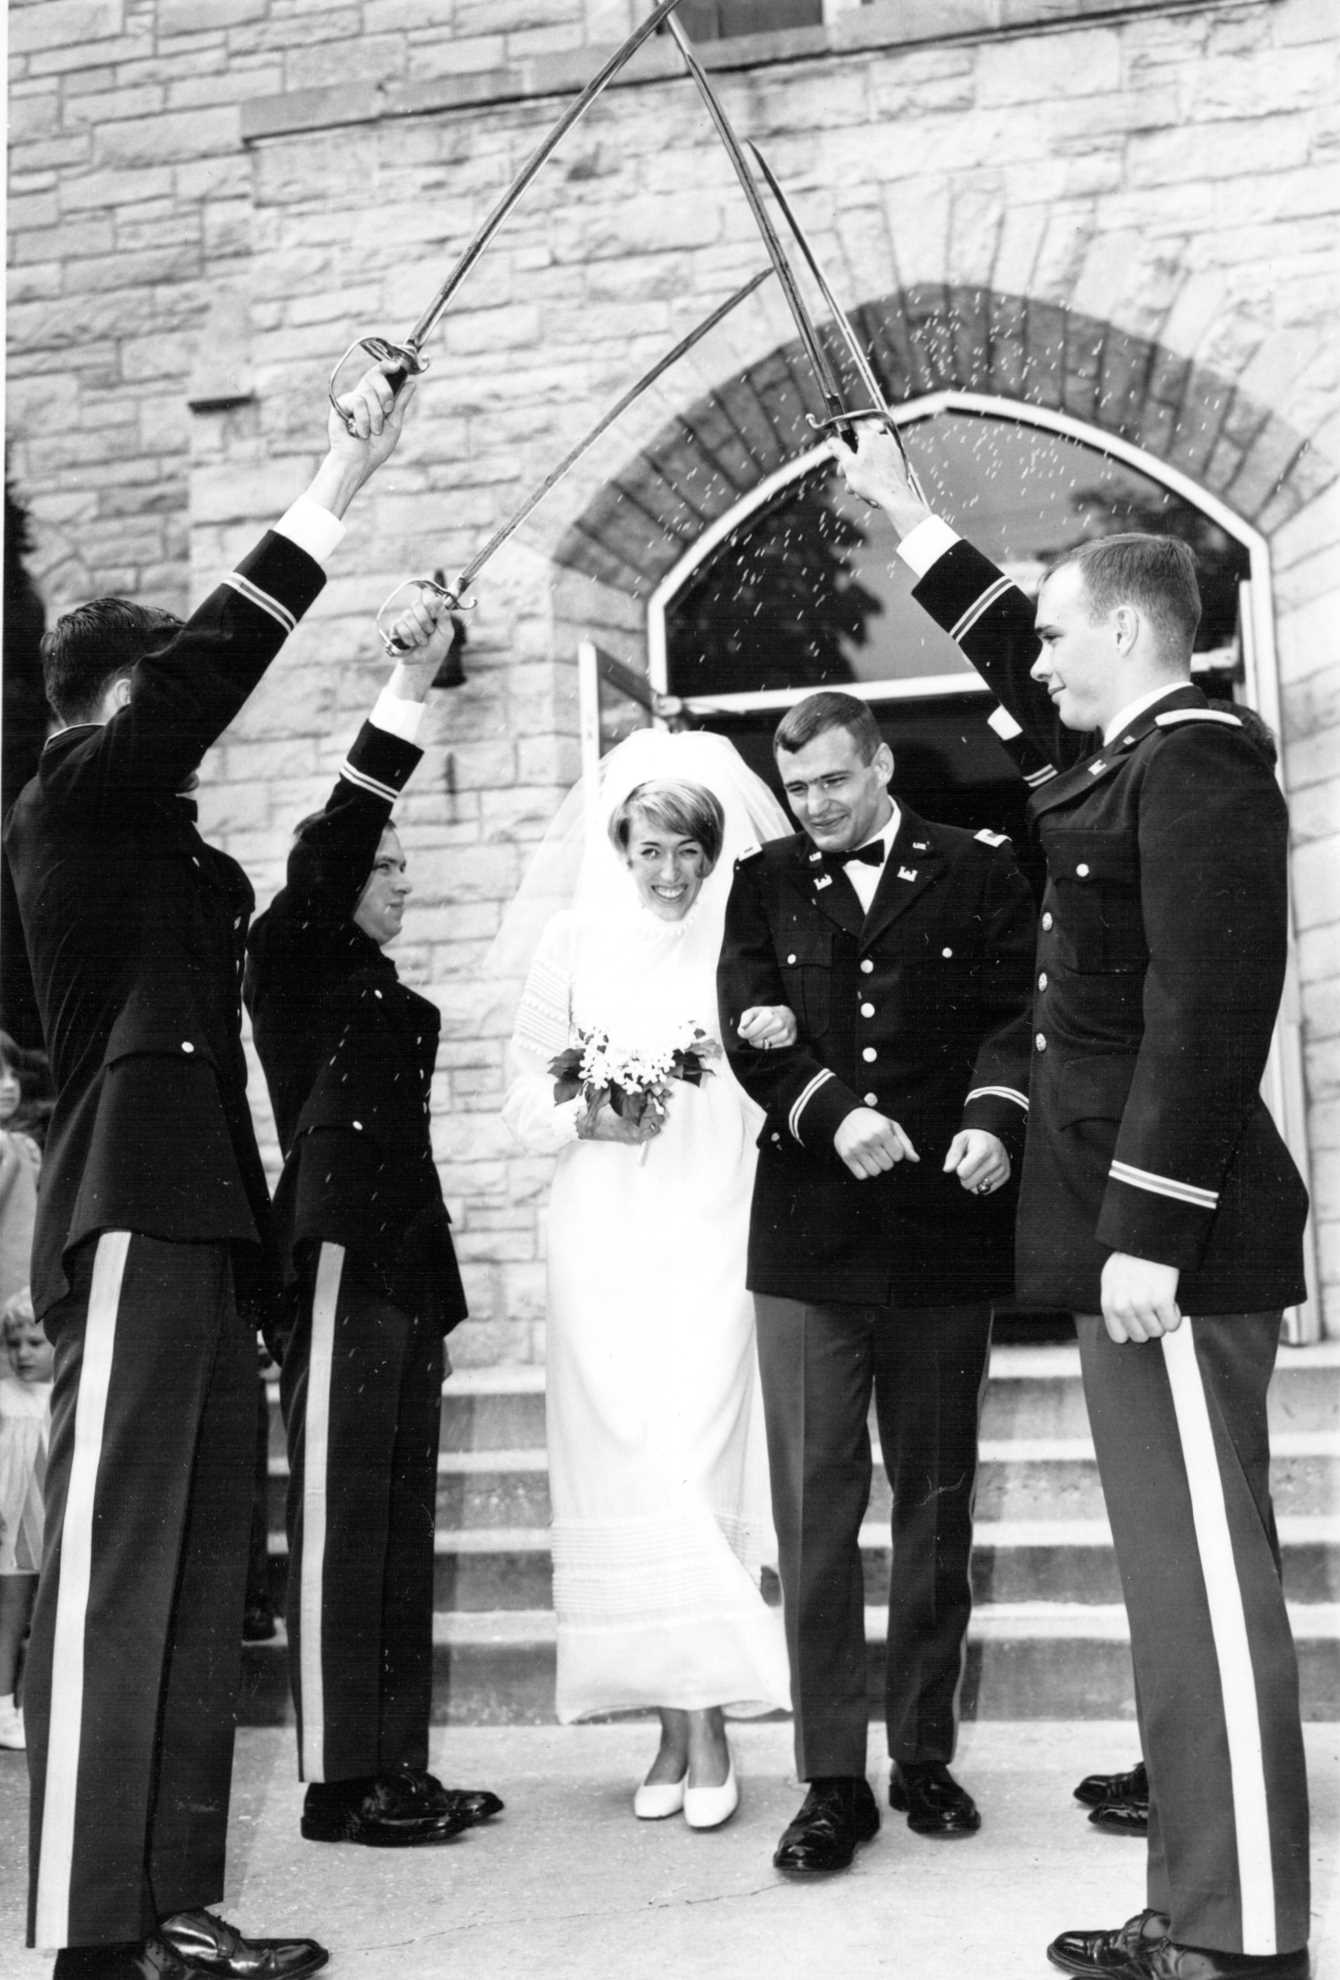 2nd Lt. Charles A. Vehlow and Katy married at West Point chapel 1968